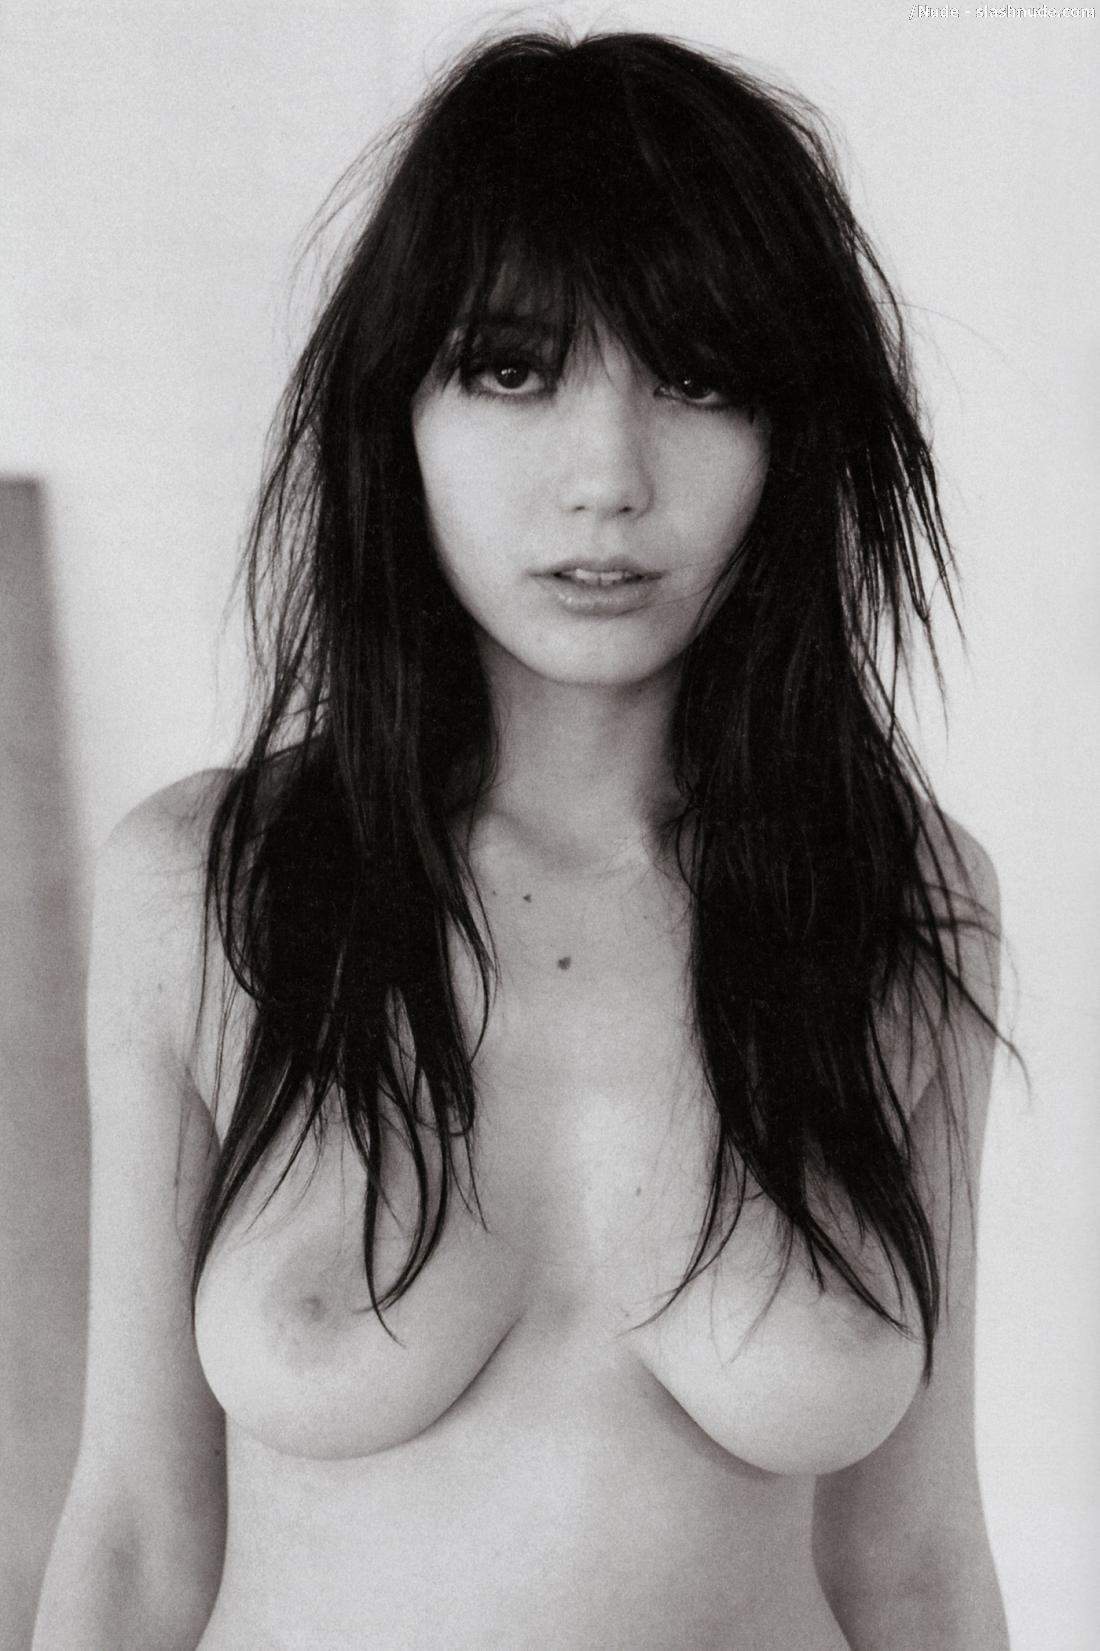 Daisy Lowe Nude And Full Frontal For Paradis 3